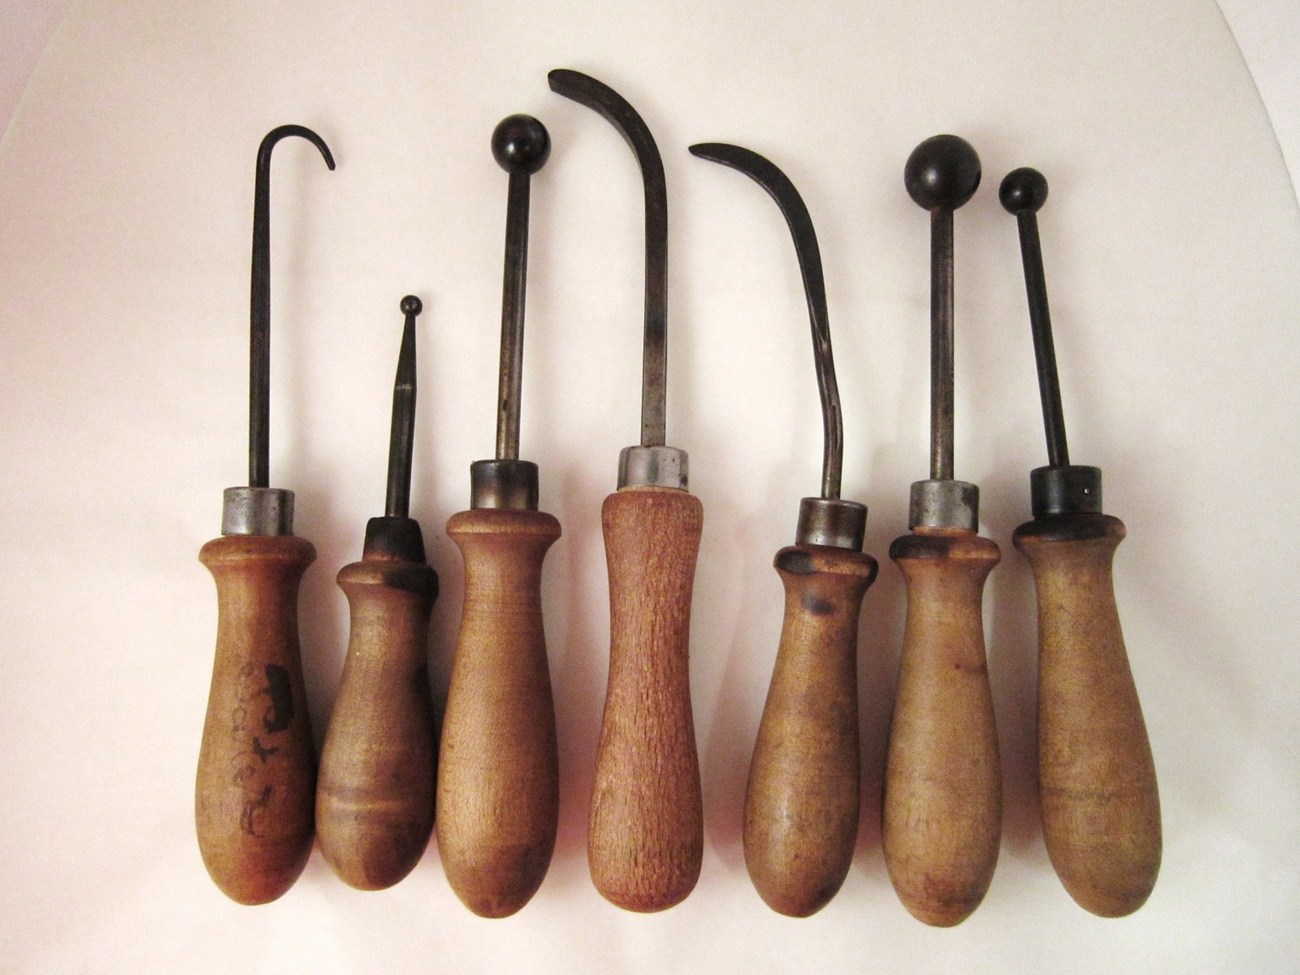 Seven Old Shoemaker Boot Making Hand Tools Leather